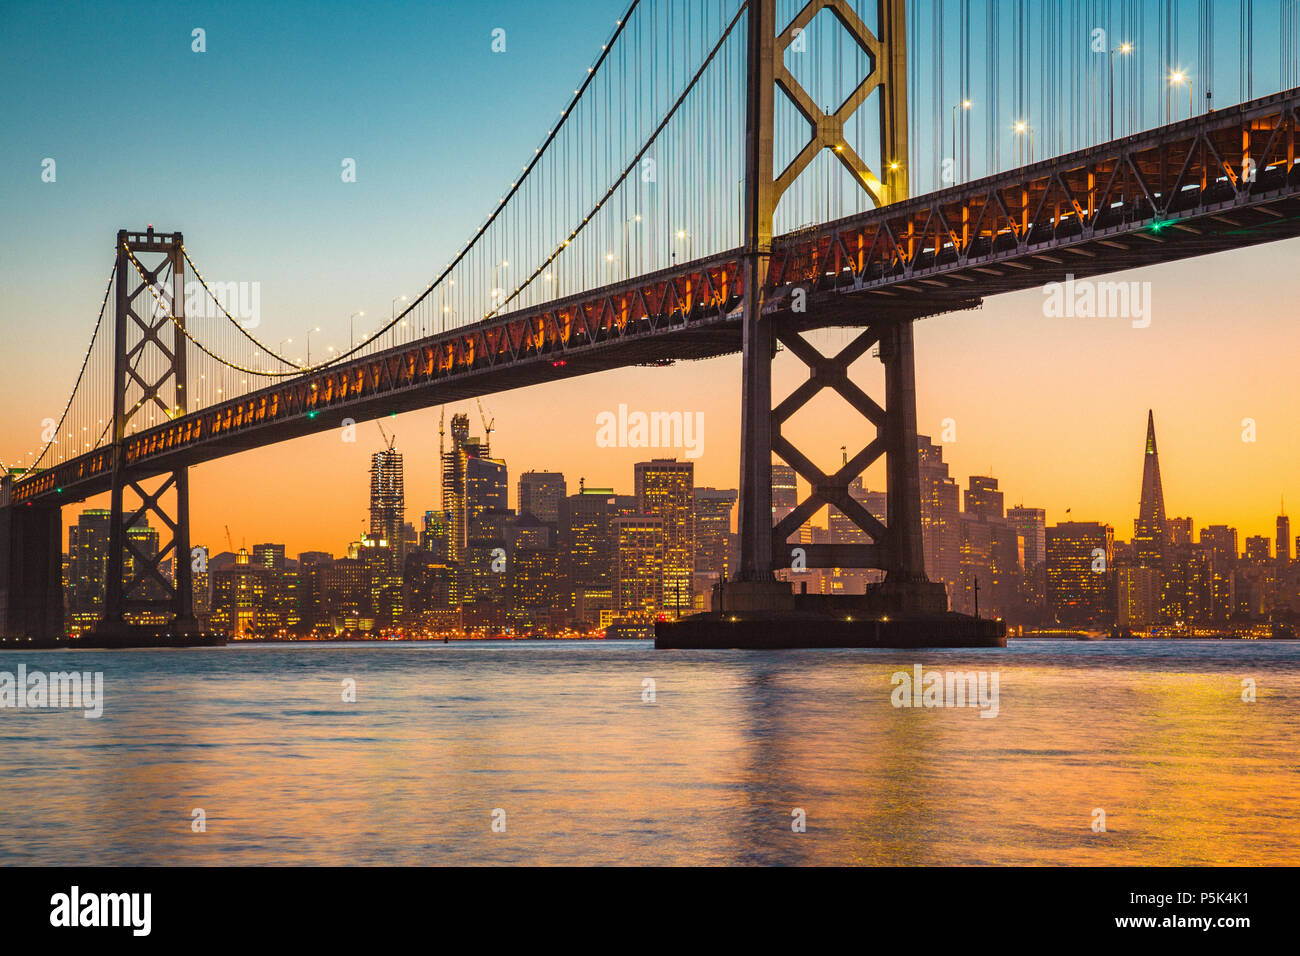 Classic panoramic view of San Francisco skyline with famous Oakland Bay Bridge illuminated in beautiful golden evening light at sunset in summer - Stock Image